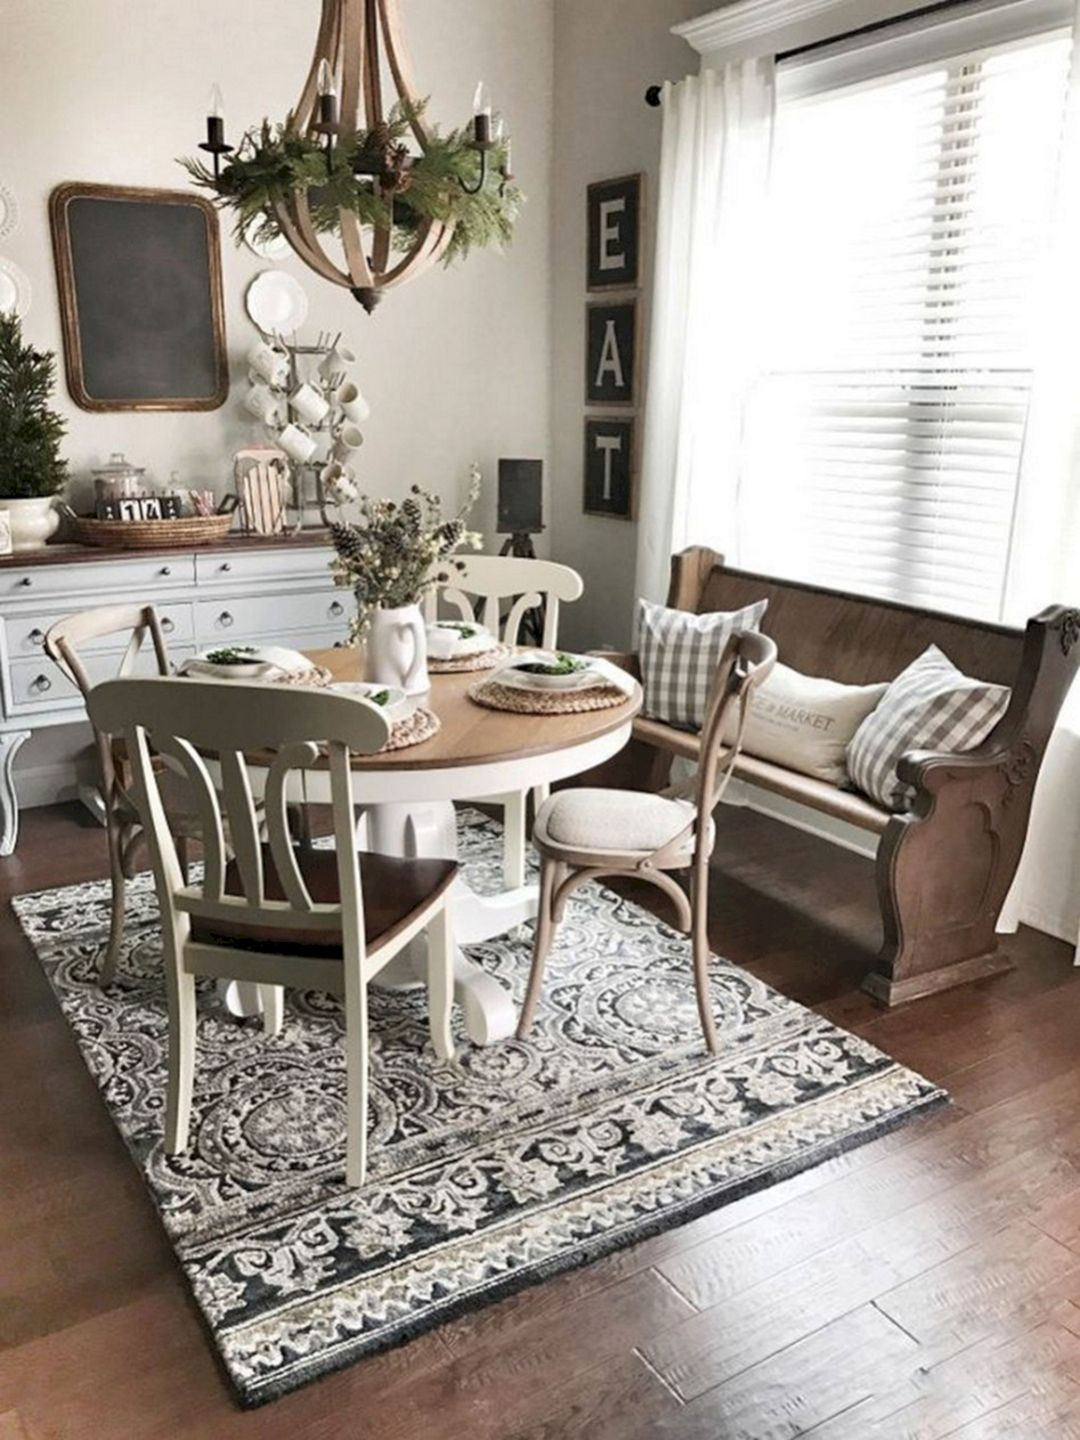 country style dining room furniture. Best Farmhouse Style Ideas 40. Dining Room FurnitureFarmhouse Country Furniture